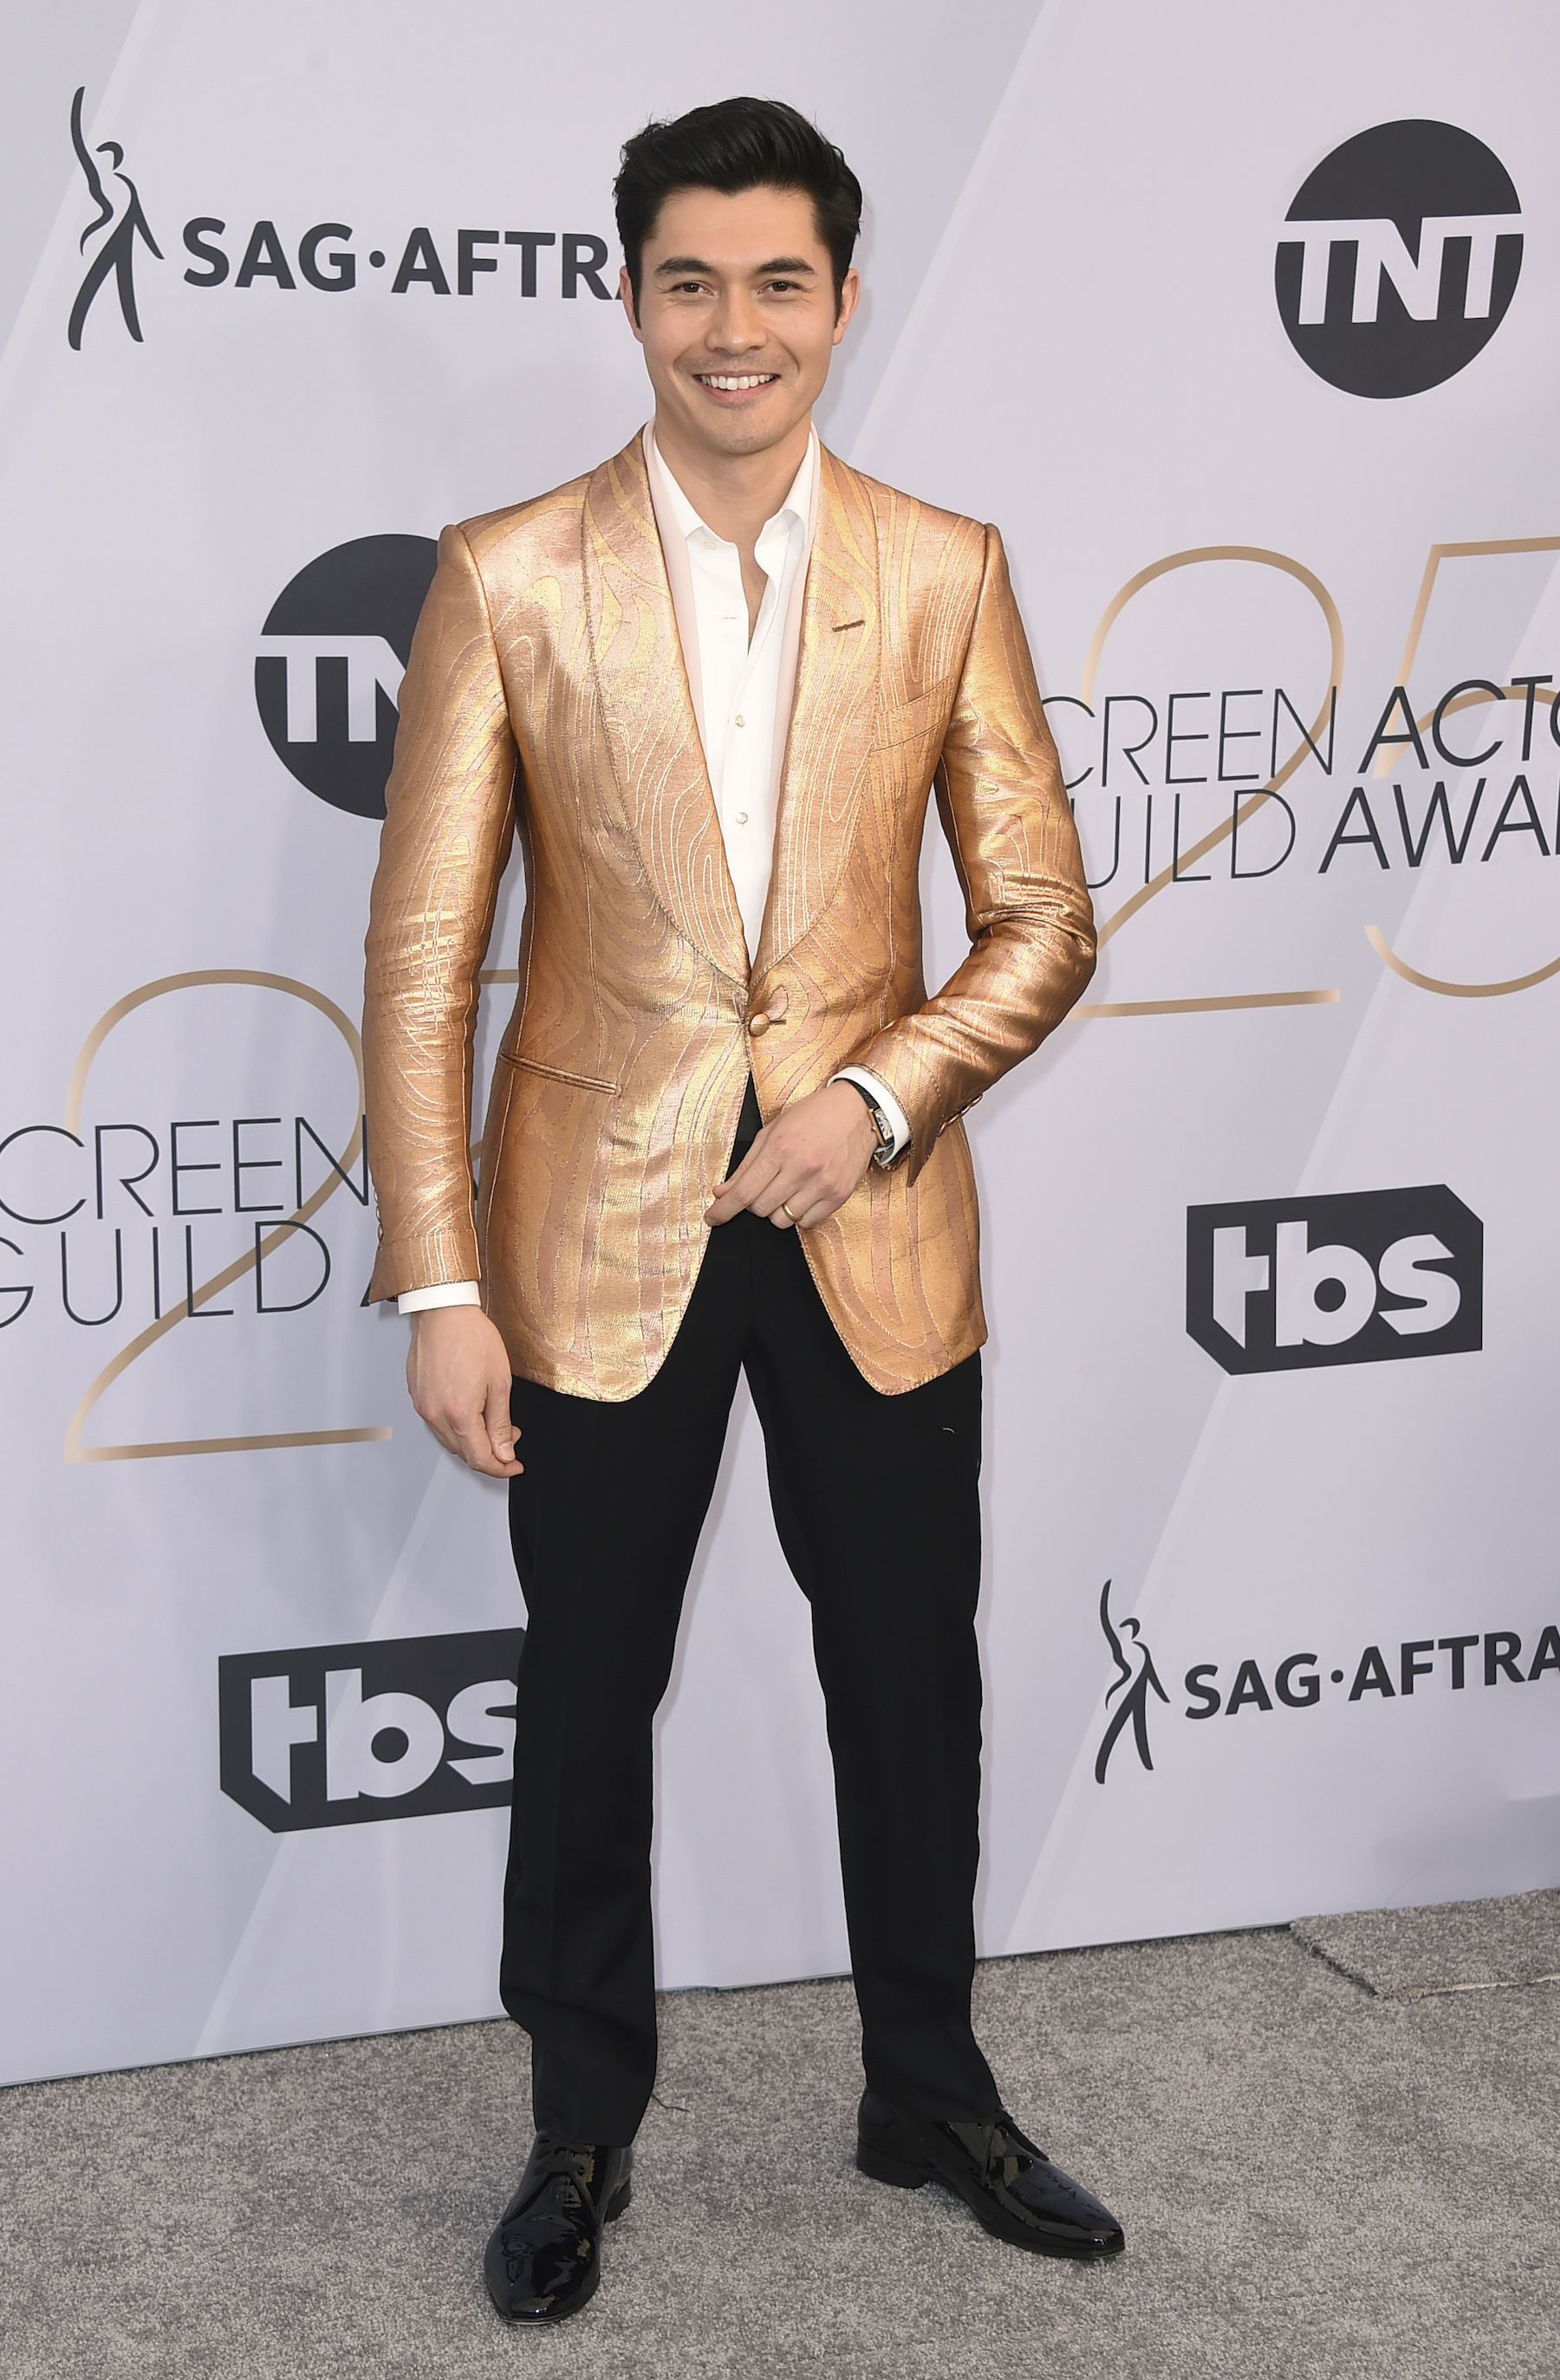 <div class='meta'><div class='origin-logo' data-origin='AP'></div><span class='caption-text' data-credit='Jordan Strauss/Invision/AP'>Henry Golding arrives at the 25th annual Screen Actors Guild Awards at the Shrine Auditorium & Expo Hall on Sunday, Jan. 27, 2019, in Los Angeles.</span></div>